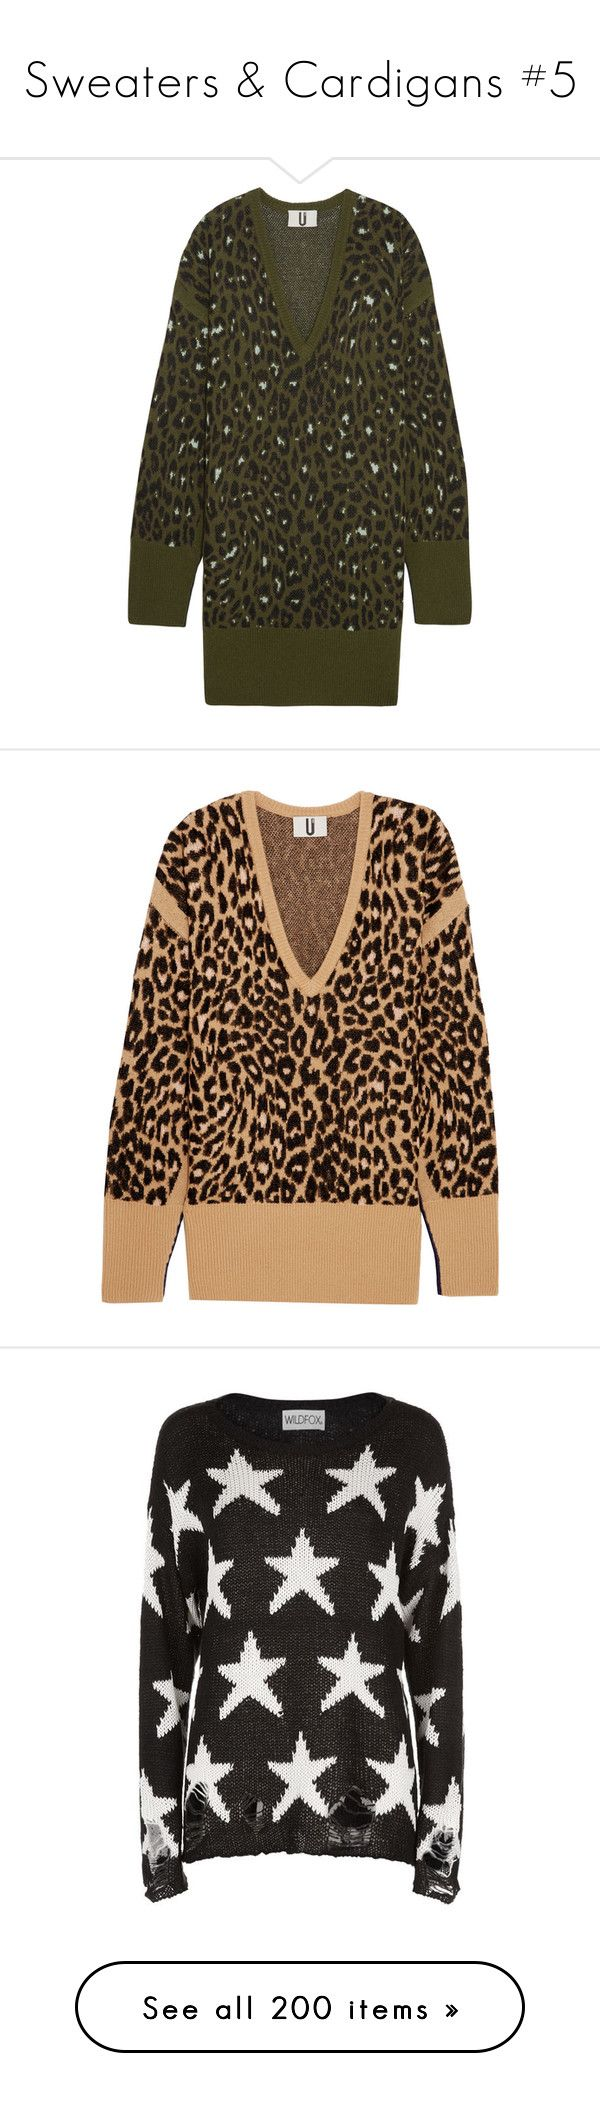 """""""Sweaters & Cardigans #5"""" by emma-oloughlin ❤ liked on Polyvore featuring dresses, oversized sweater dress, brown dress, leopard dresses, brown knit dress, sweater dress, tops, sweaters, leopard print and intarsia sweater"""